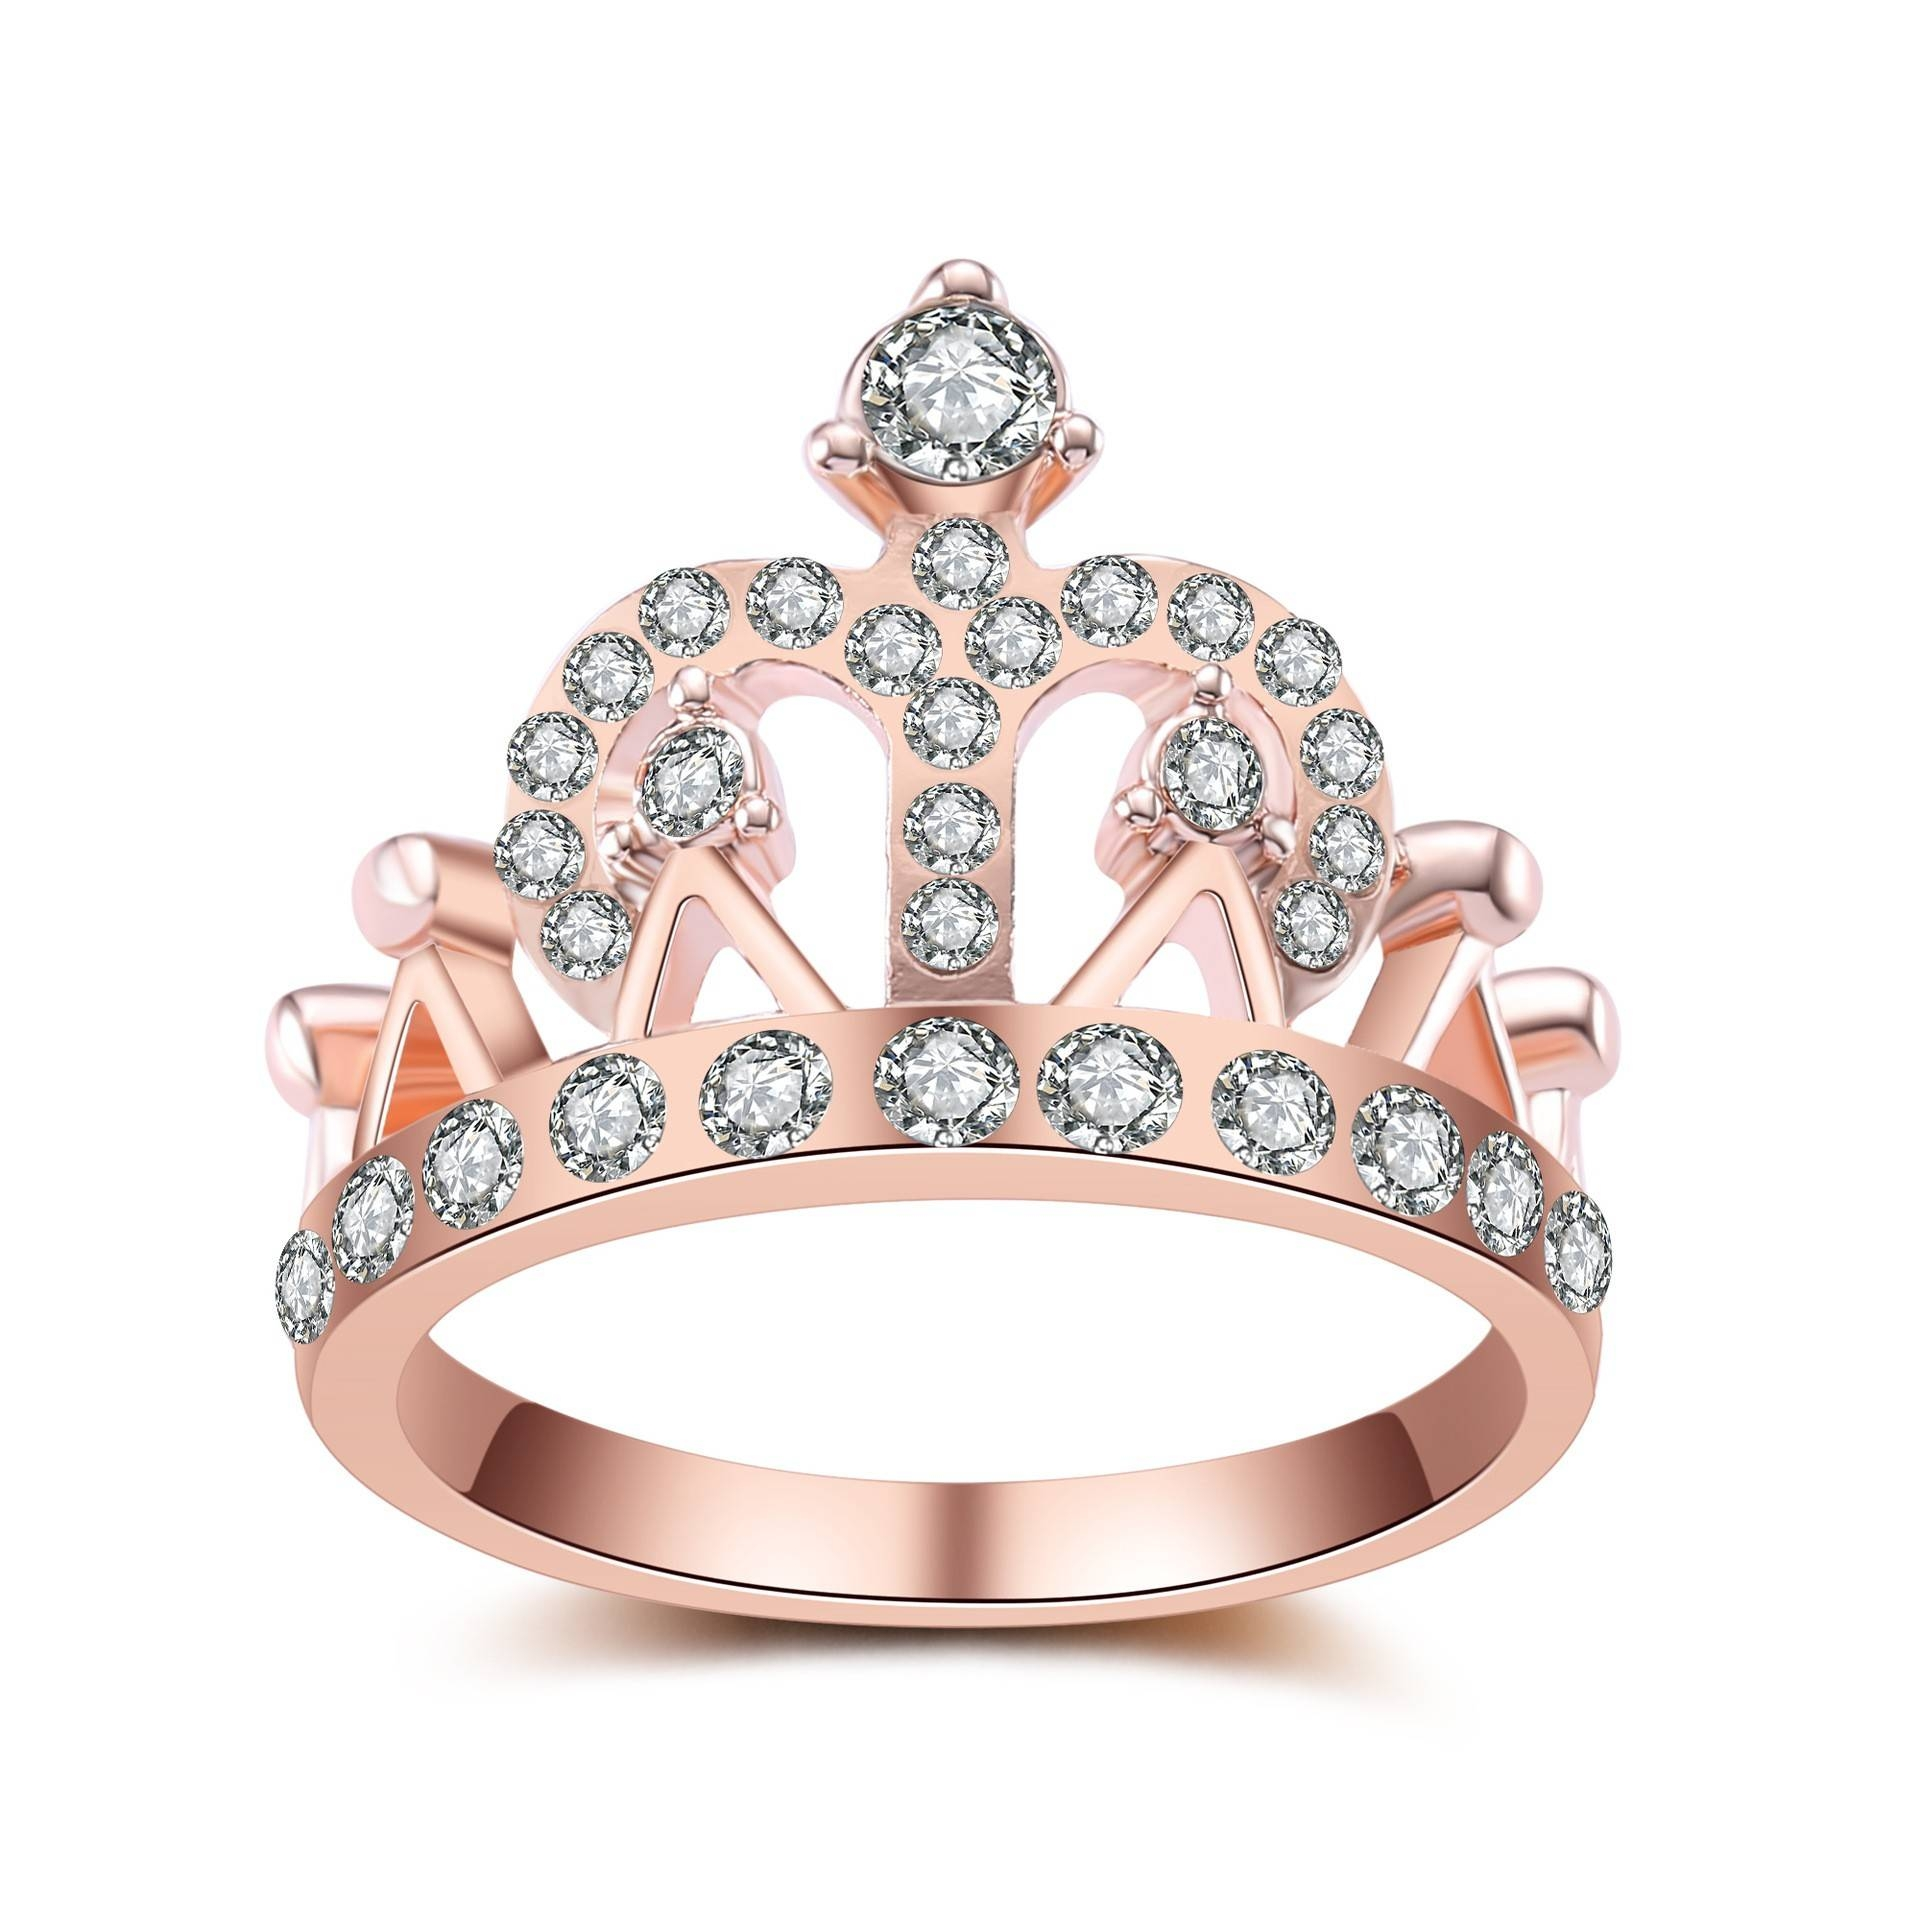 Jewelry Rings: King And Queen Crown Wedding Rings Elegant Popular Throughout King And Queen Engagement Rings (Gallery 12 of 15)